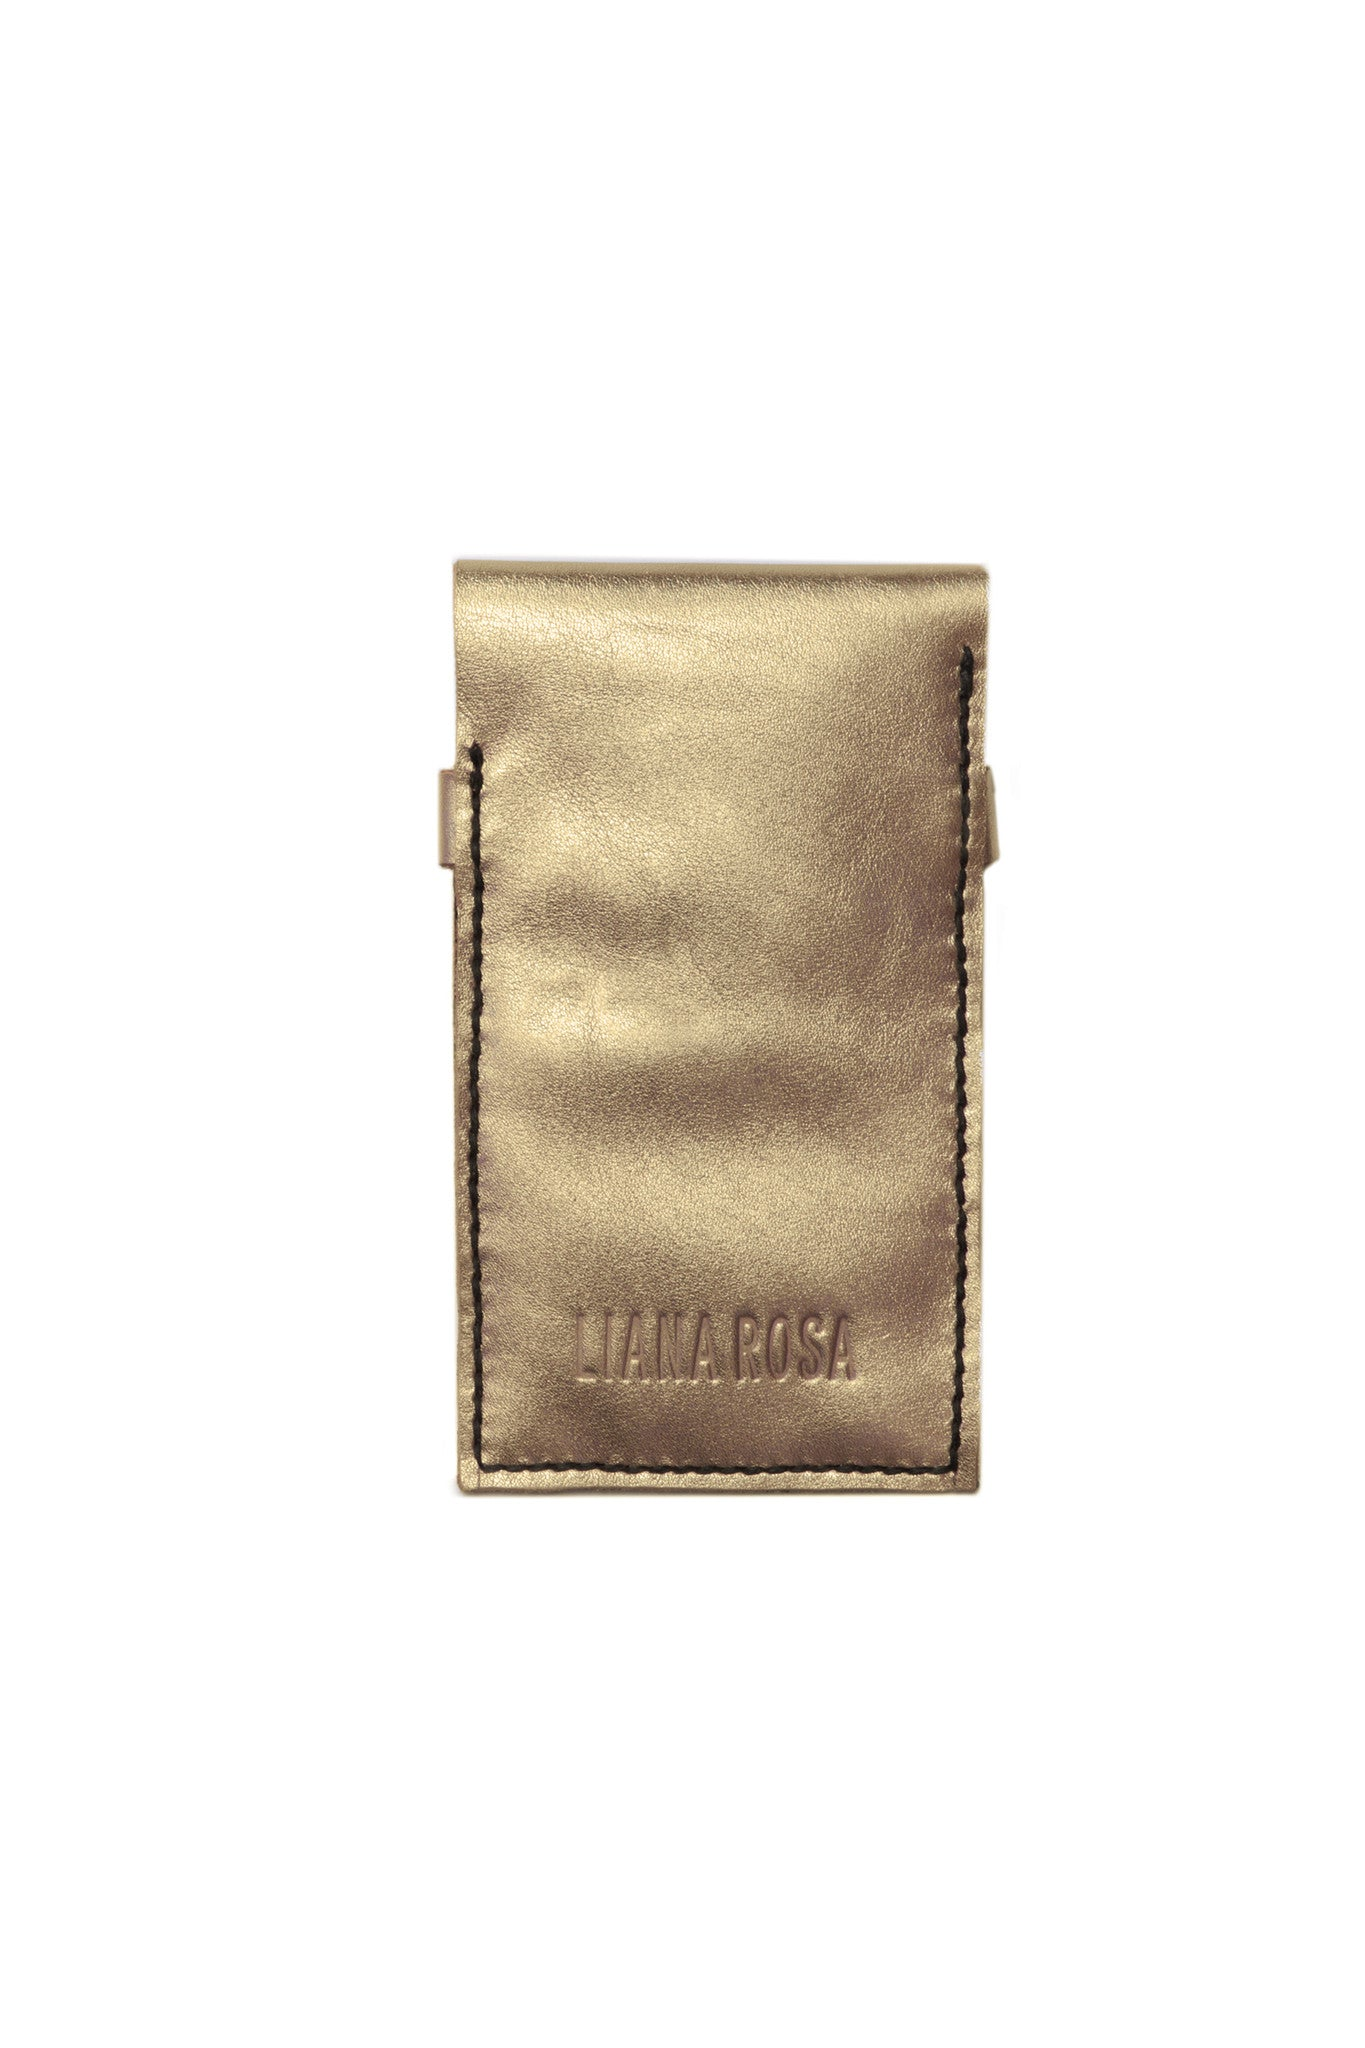 Stella Gold & Black Leather Raw iPhone Sleeve Back View by Liana Rosa